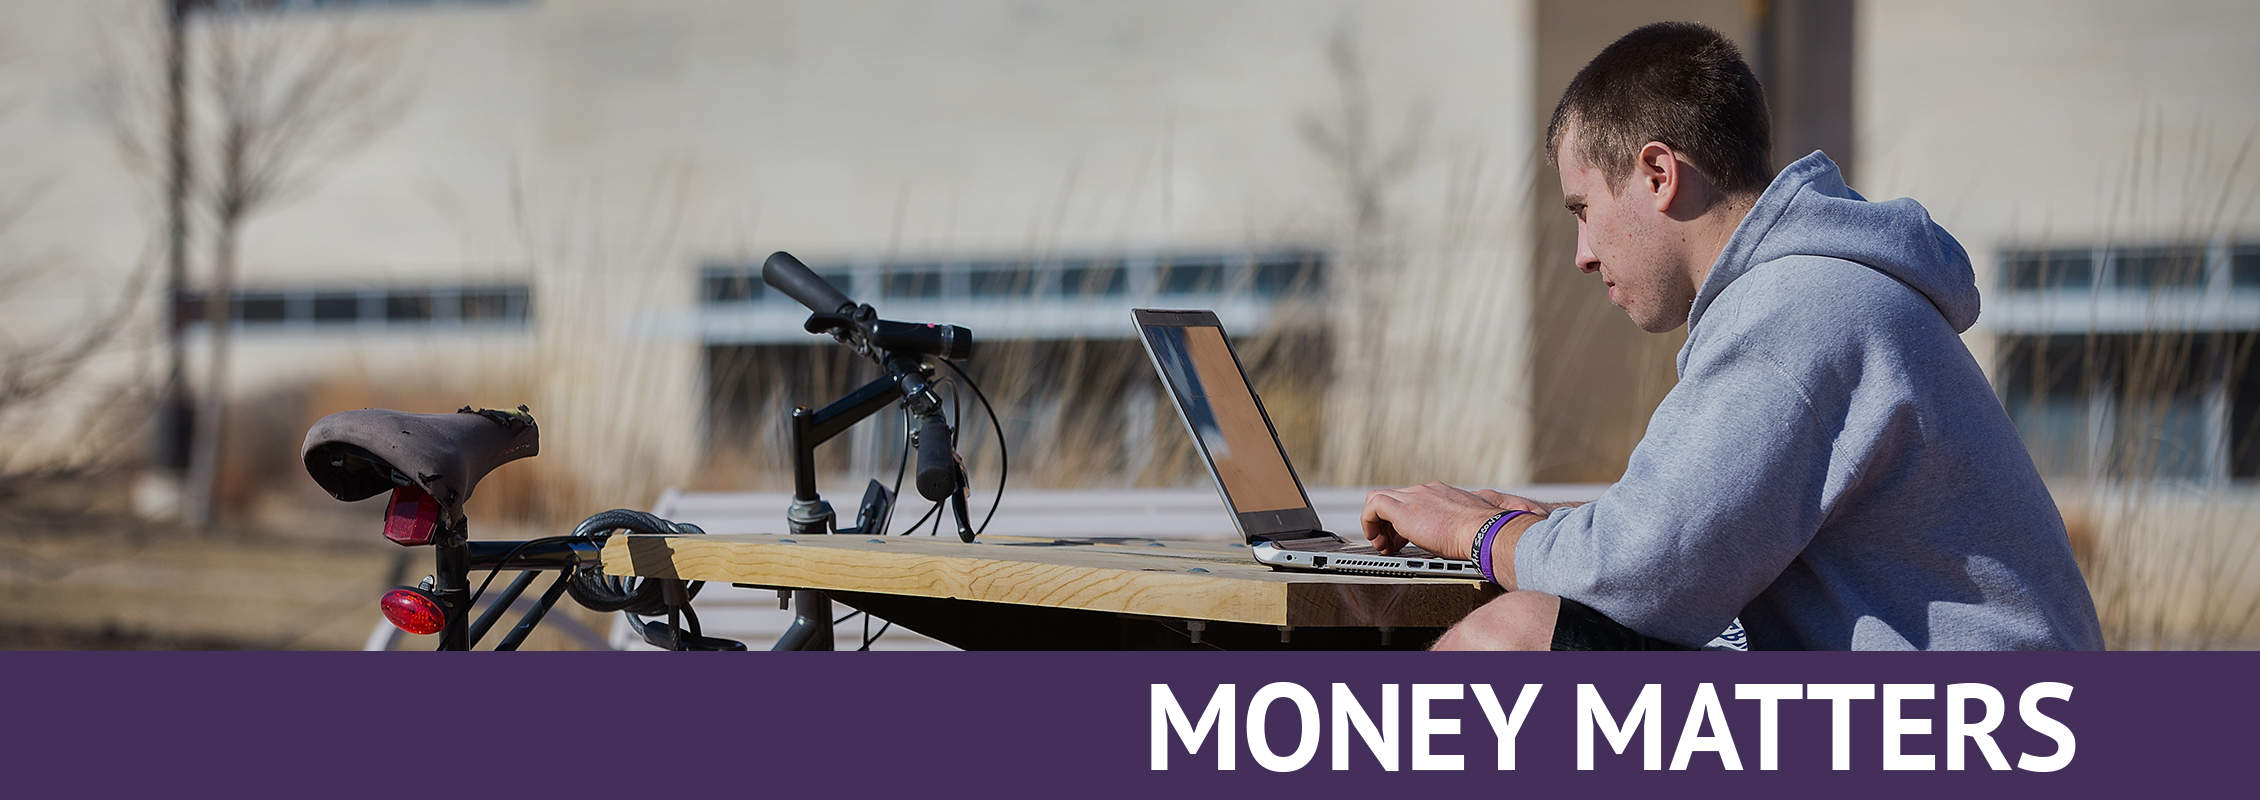 Money Matters: Student working at a laptop outside